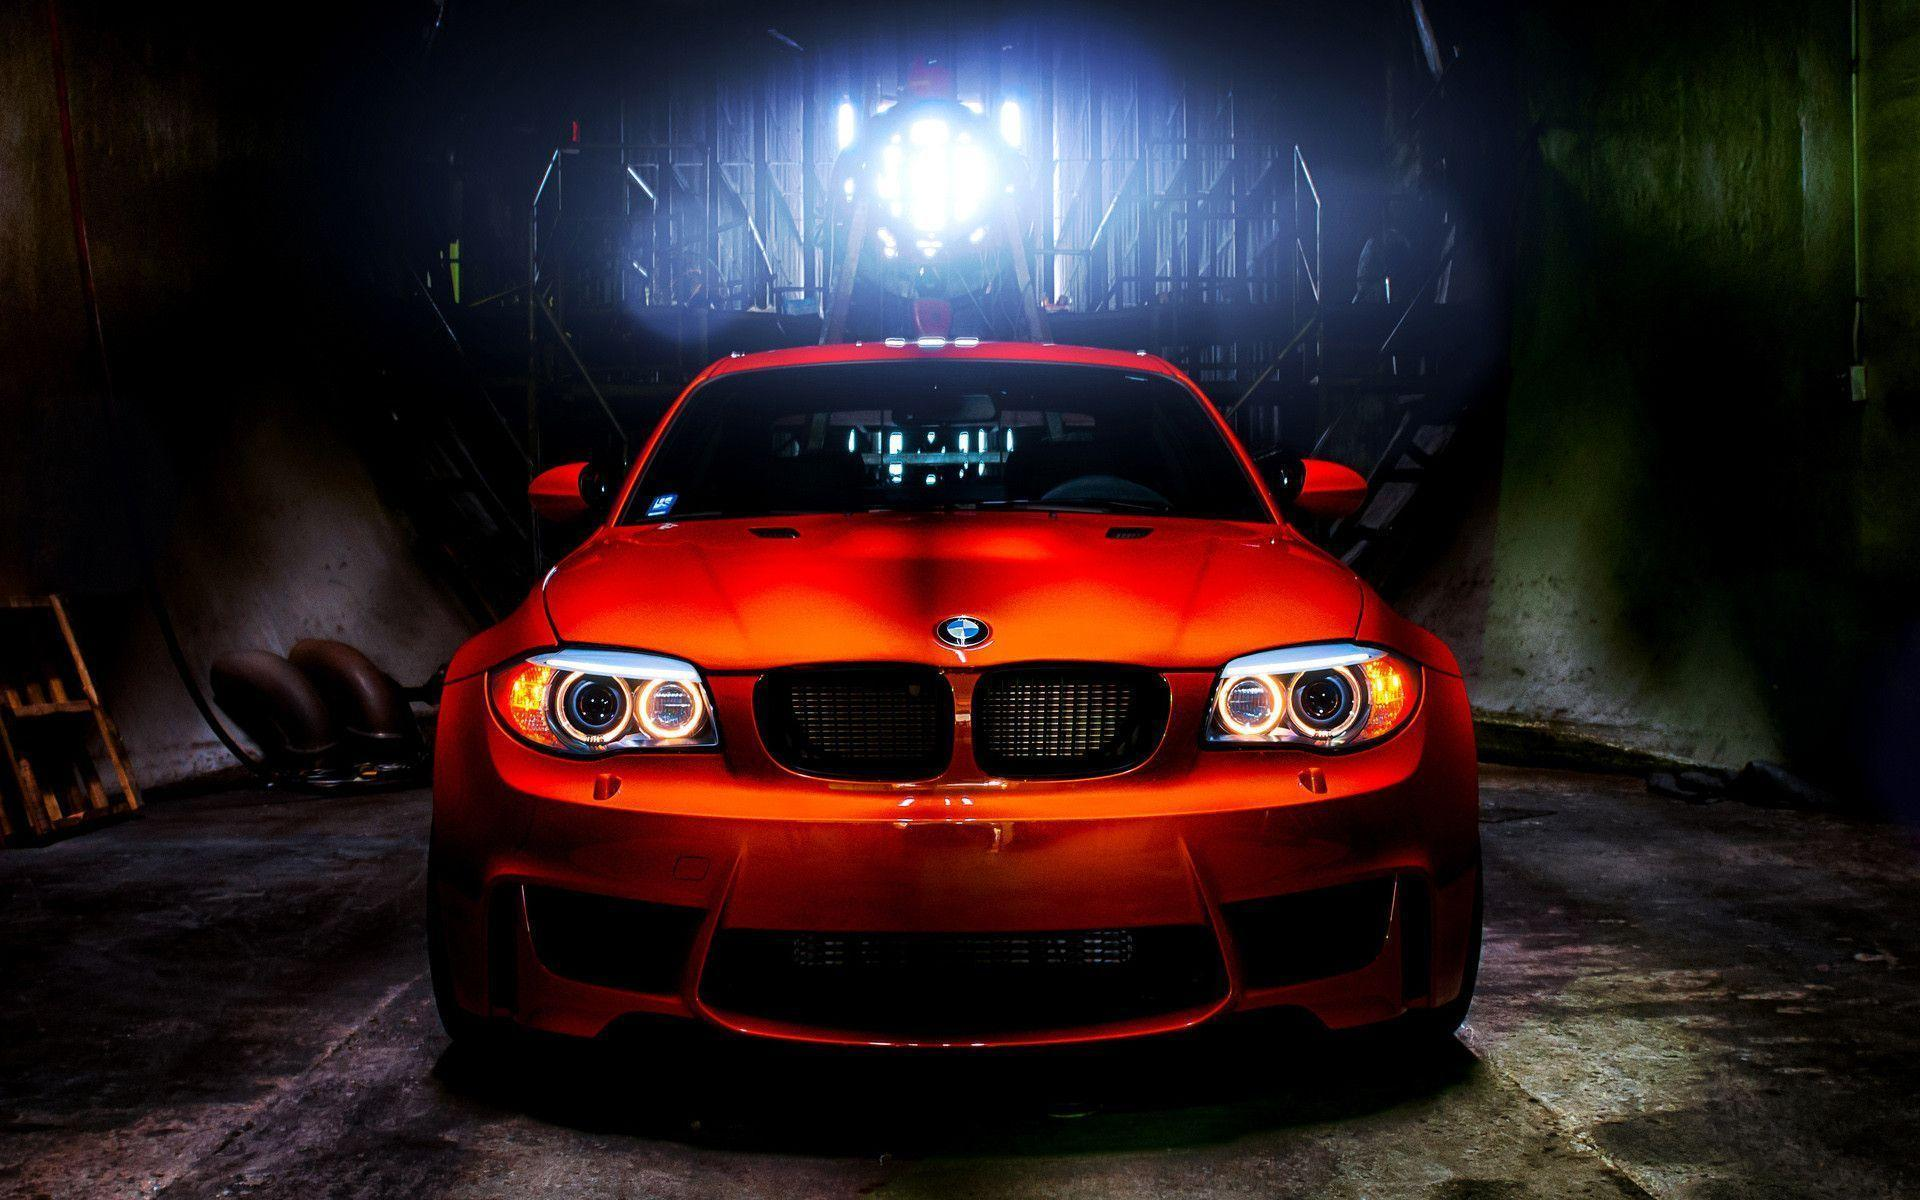 BMW 1M HDR Wallpapers